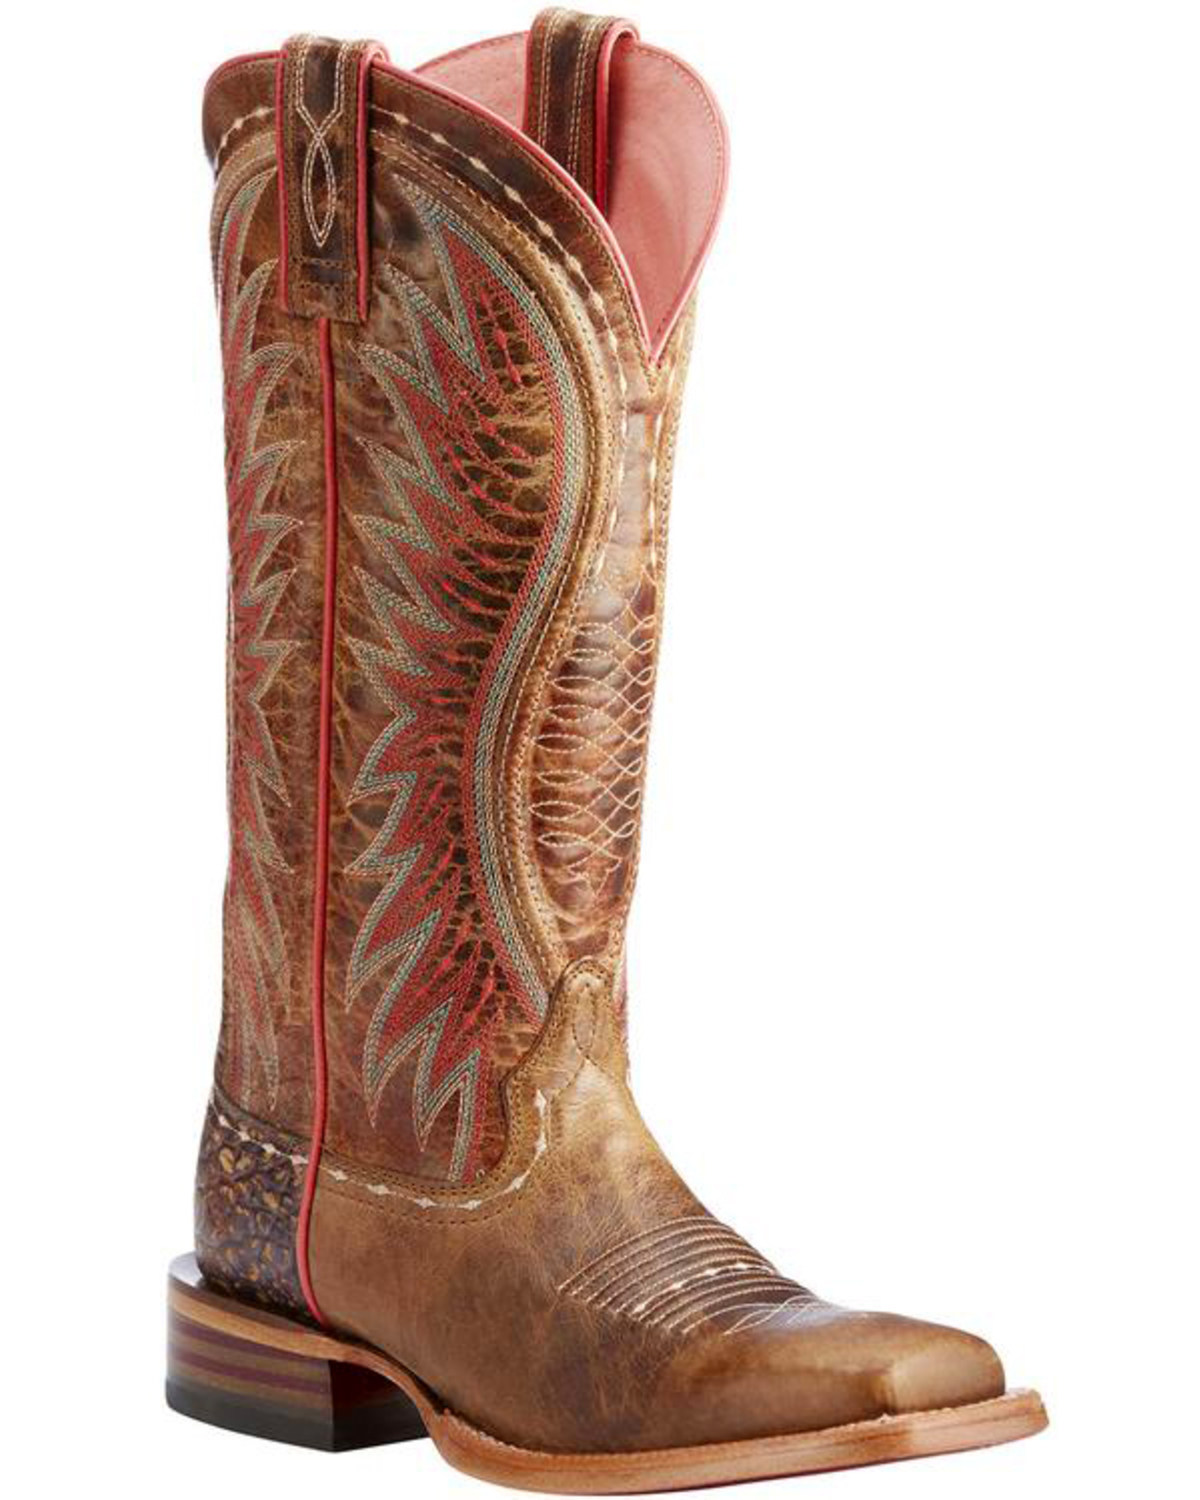 14a2bf8d7141 Ariat Women s Wheat Vaquera Dusted Boots - Square Toe